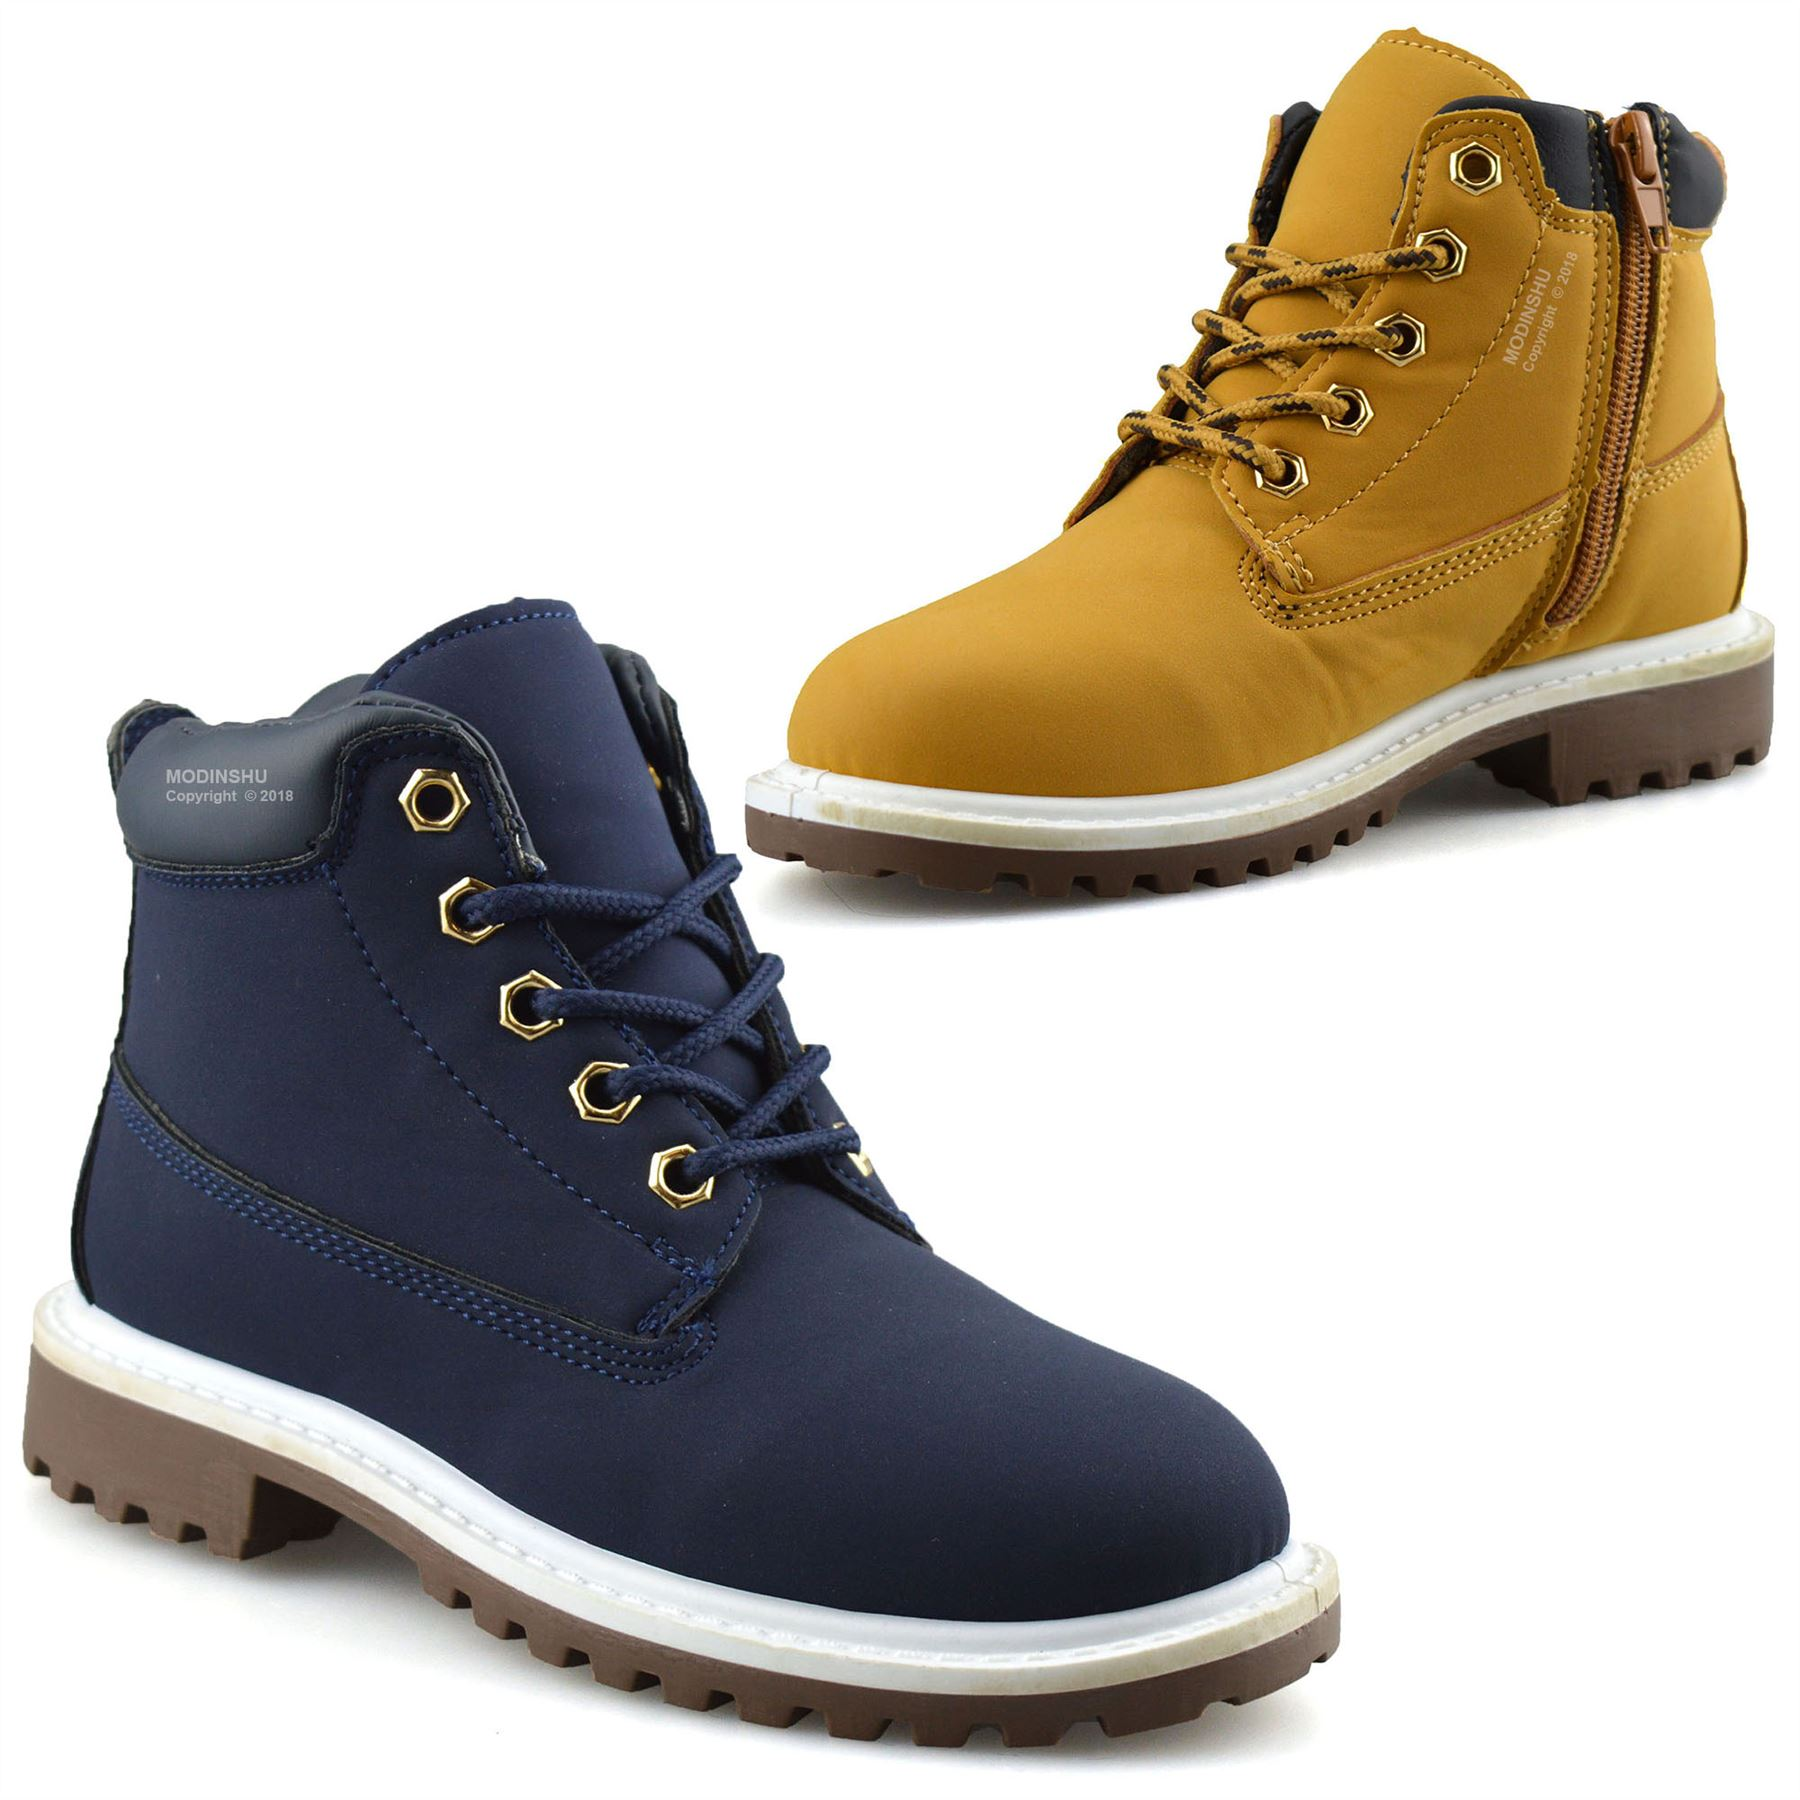 Details about Boys Kids New Casual Zip Lace Up Winter Walking Ankle Boots  Trainers Shoes Size